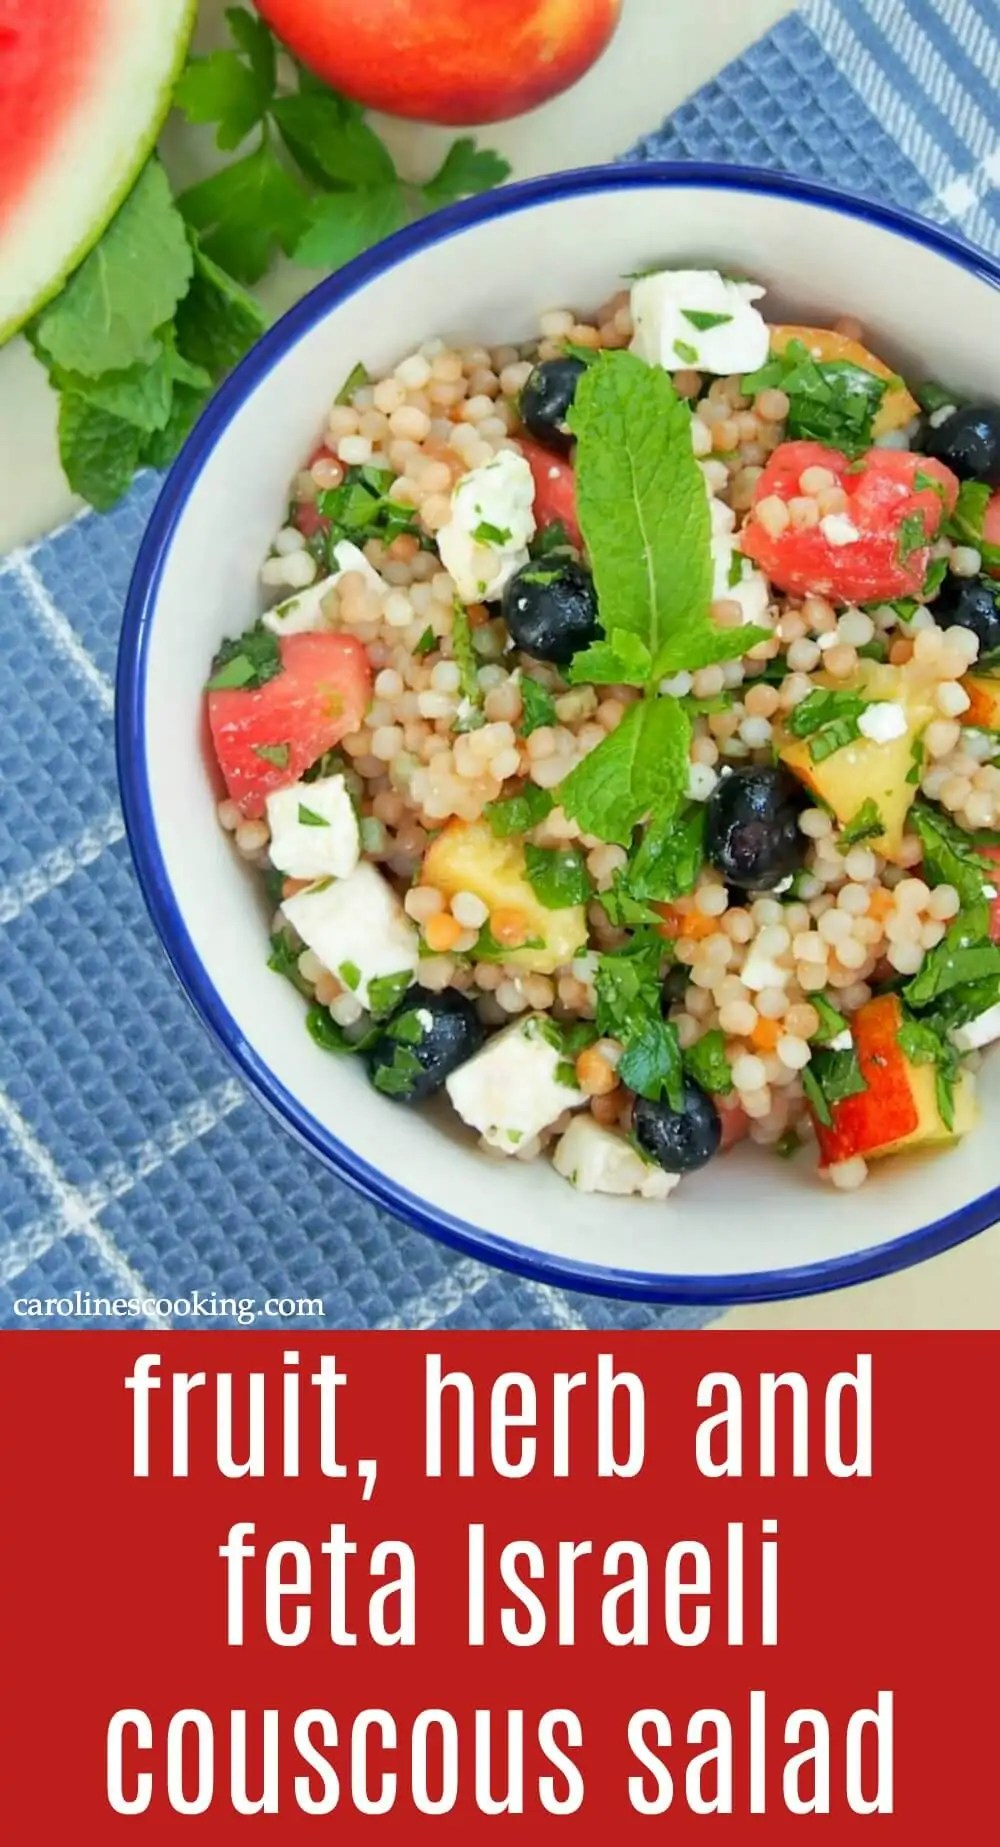 This fruit, herb and feta Israeli couscous salad is light and refreshing with fresh fruit and cooling herbs, but filling enough to be a great lunch or side. #salad #potluck #picnic #vegetarian